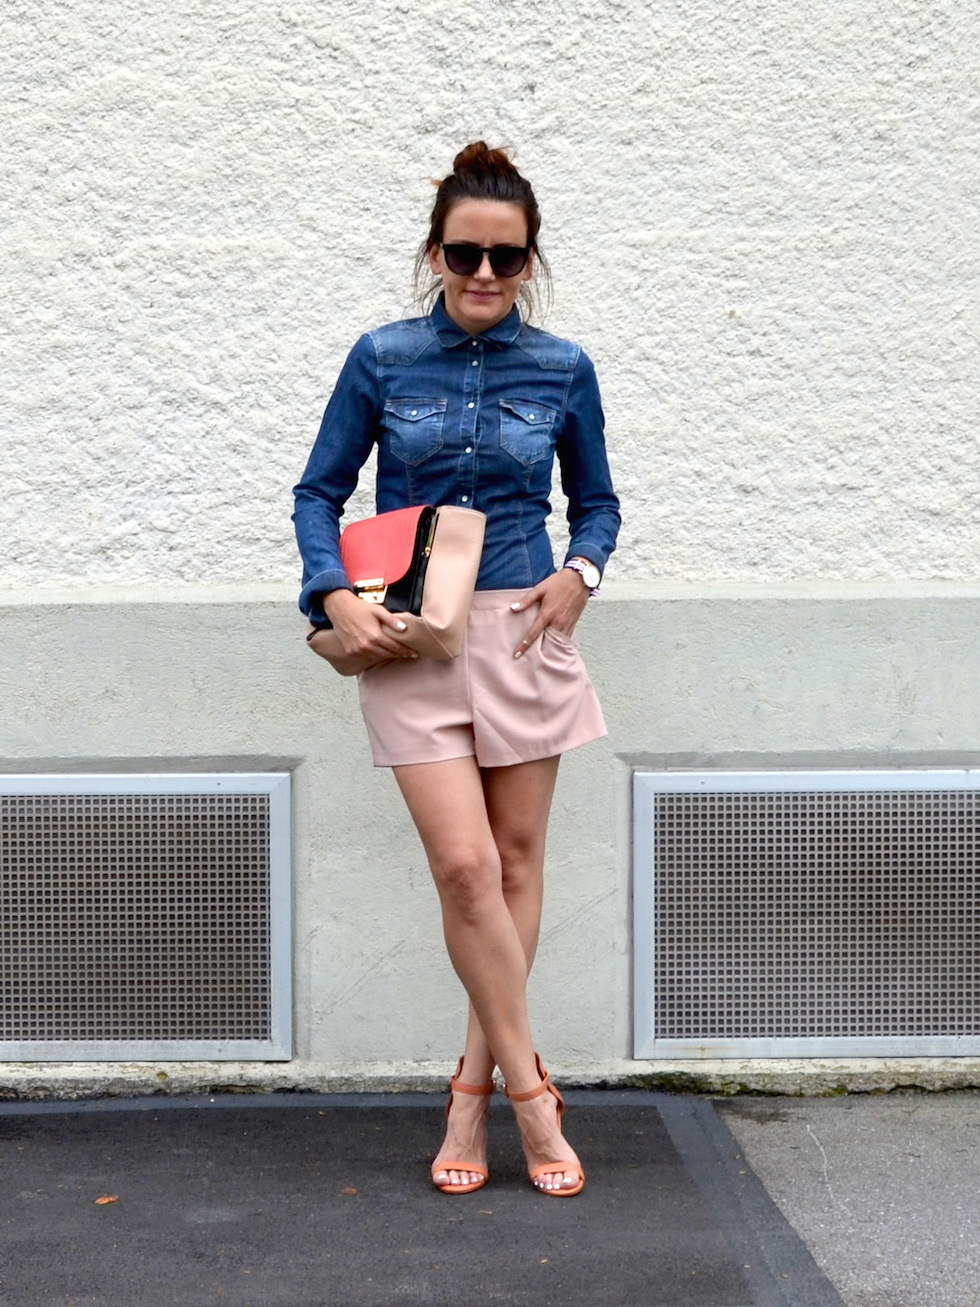 LA style schweiz, fashion blog mekivi